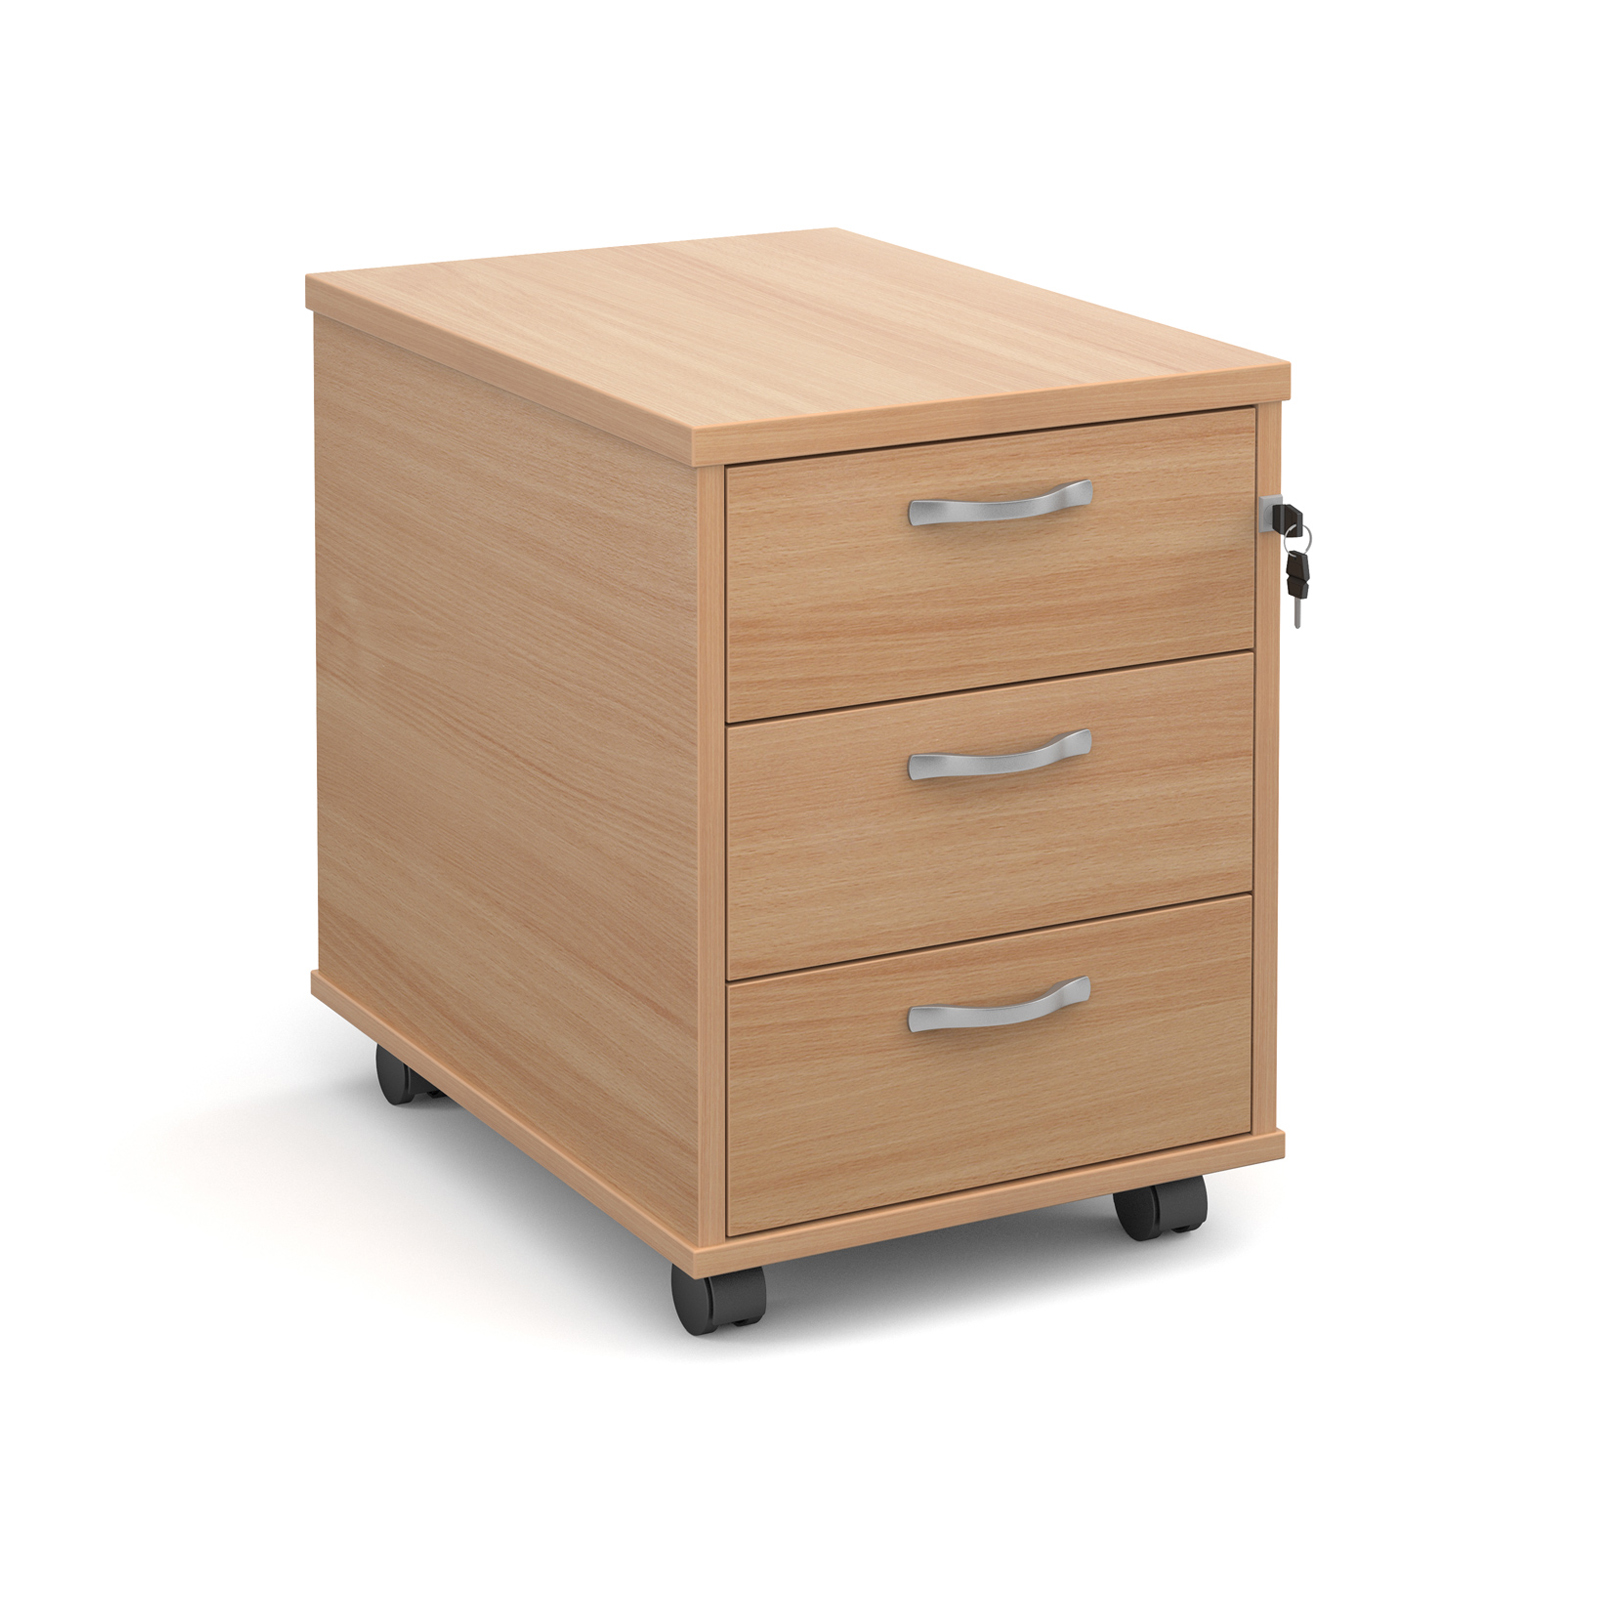 Mobile 3 drawer pedestal with silver handles 600mm deep - beech